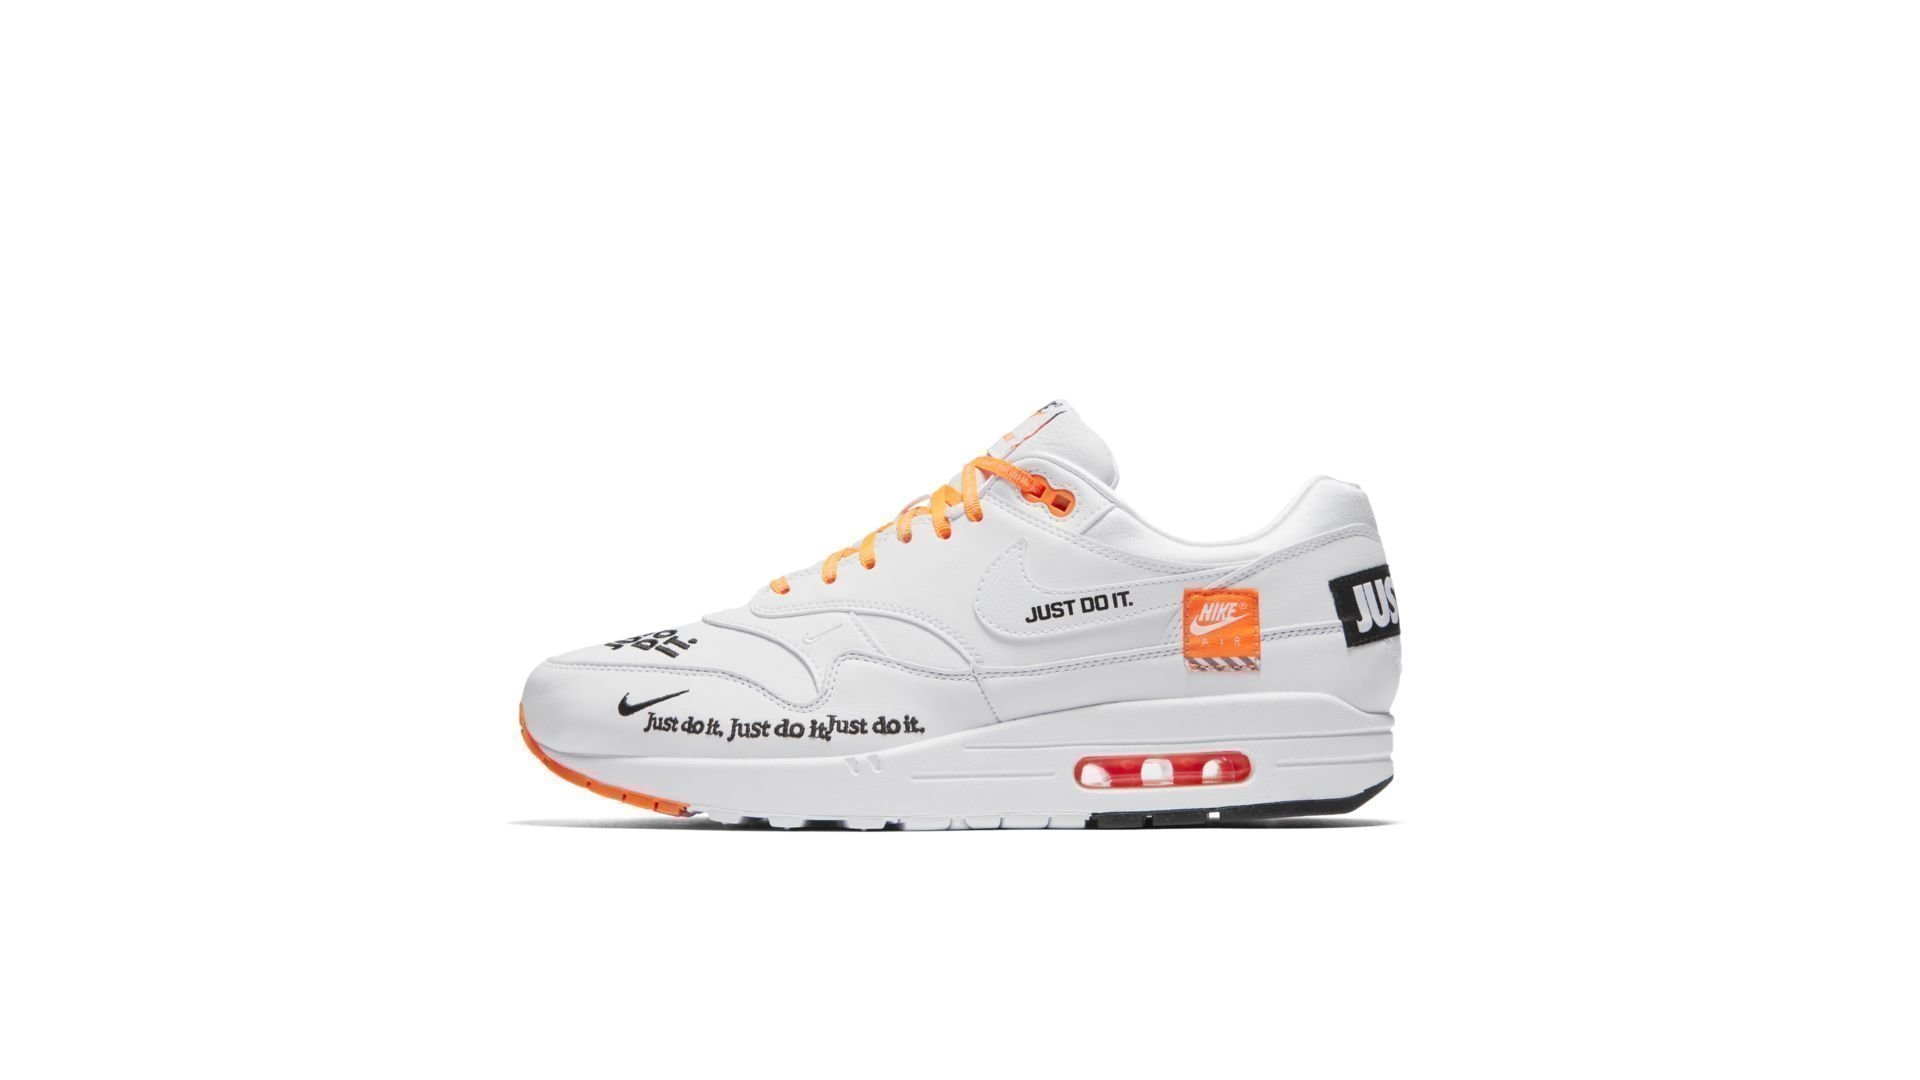 Nike Air Max 1 Just Do It White (AO1021-100)